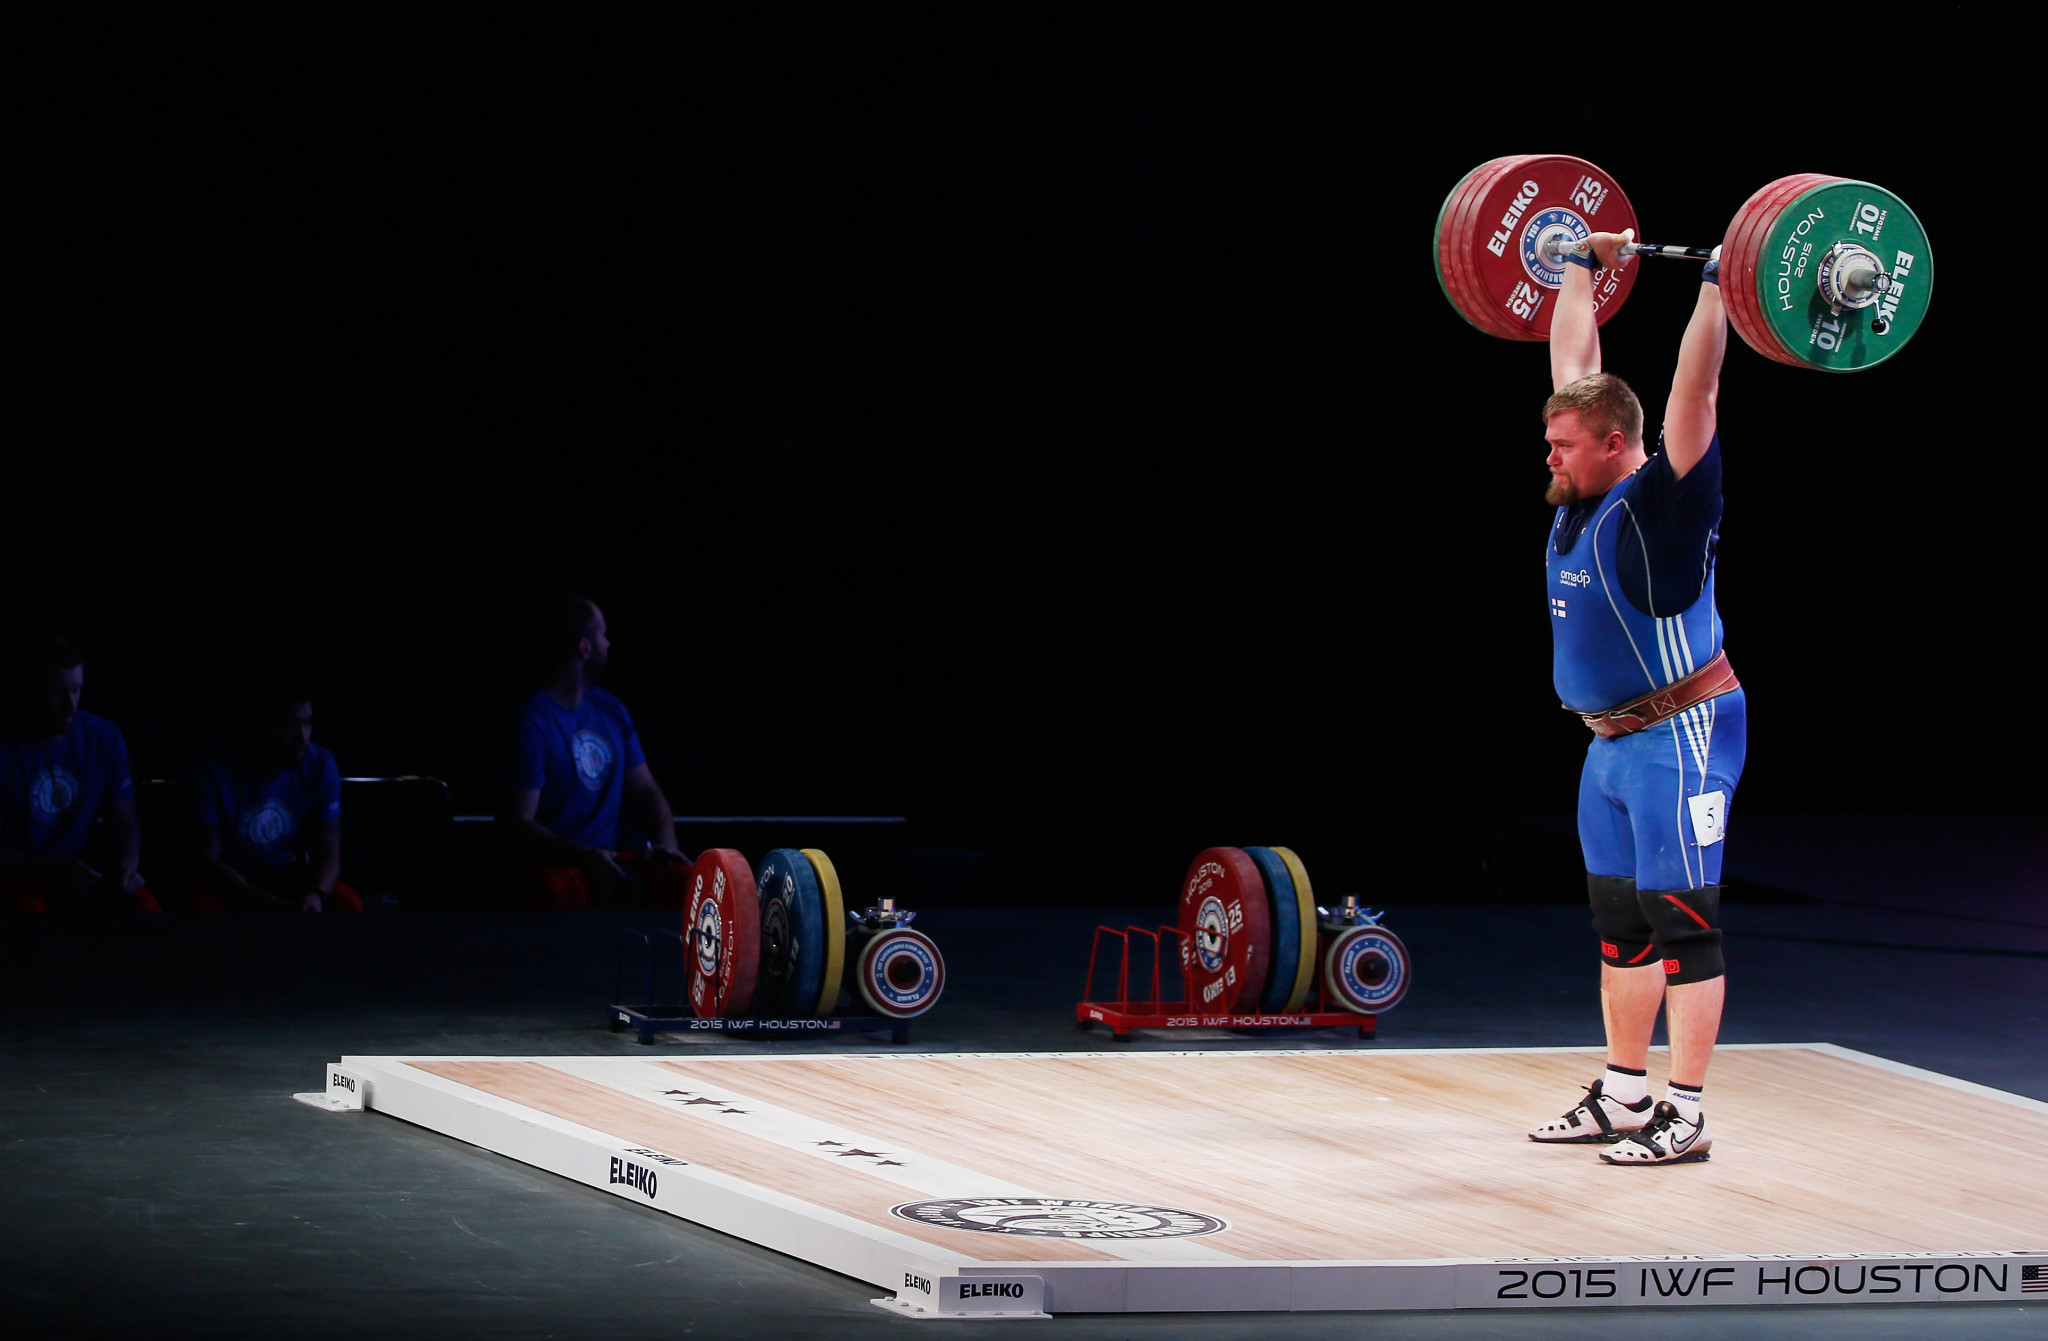 Anaheim will follow fellow American city Houston in hosting the IWF World Weightlifting Championships ©Getty Images